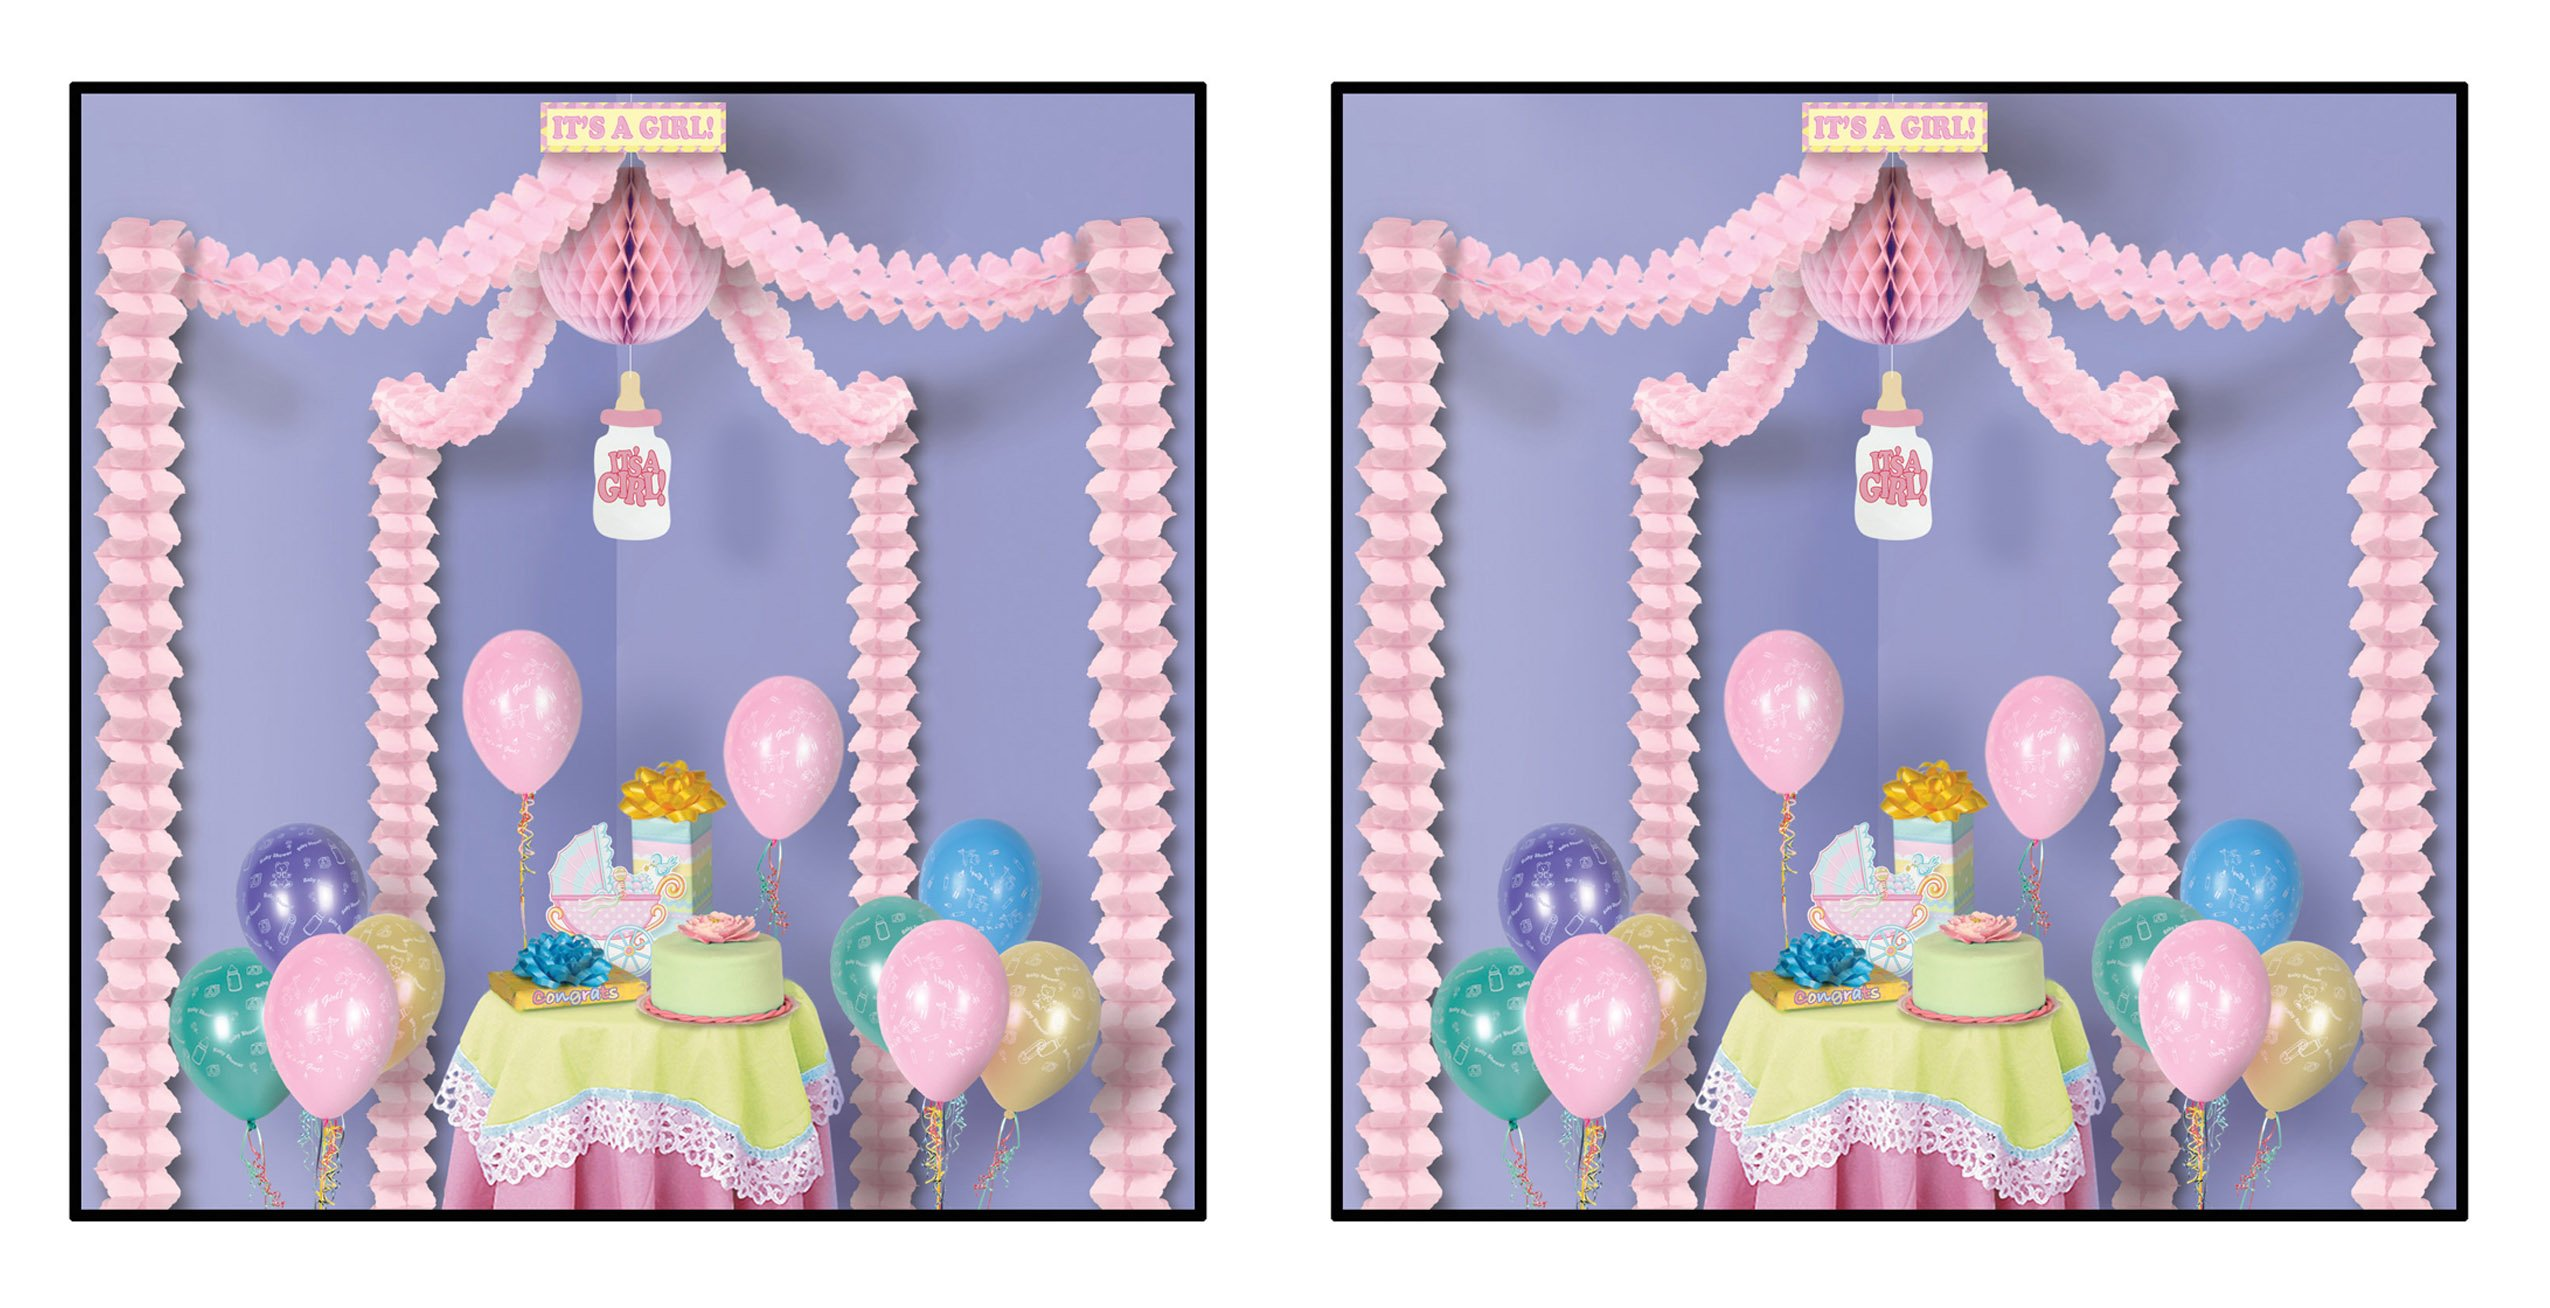 Beistle S54428AZ2 It's a Girl Party Canopy 2 Piece, Pink